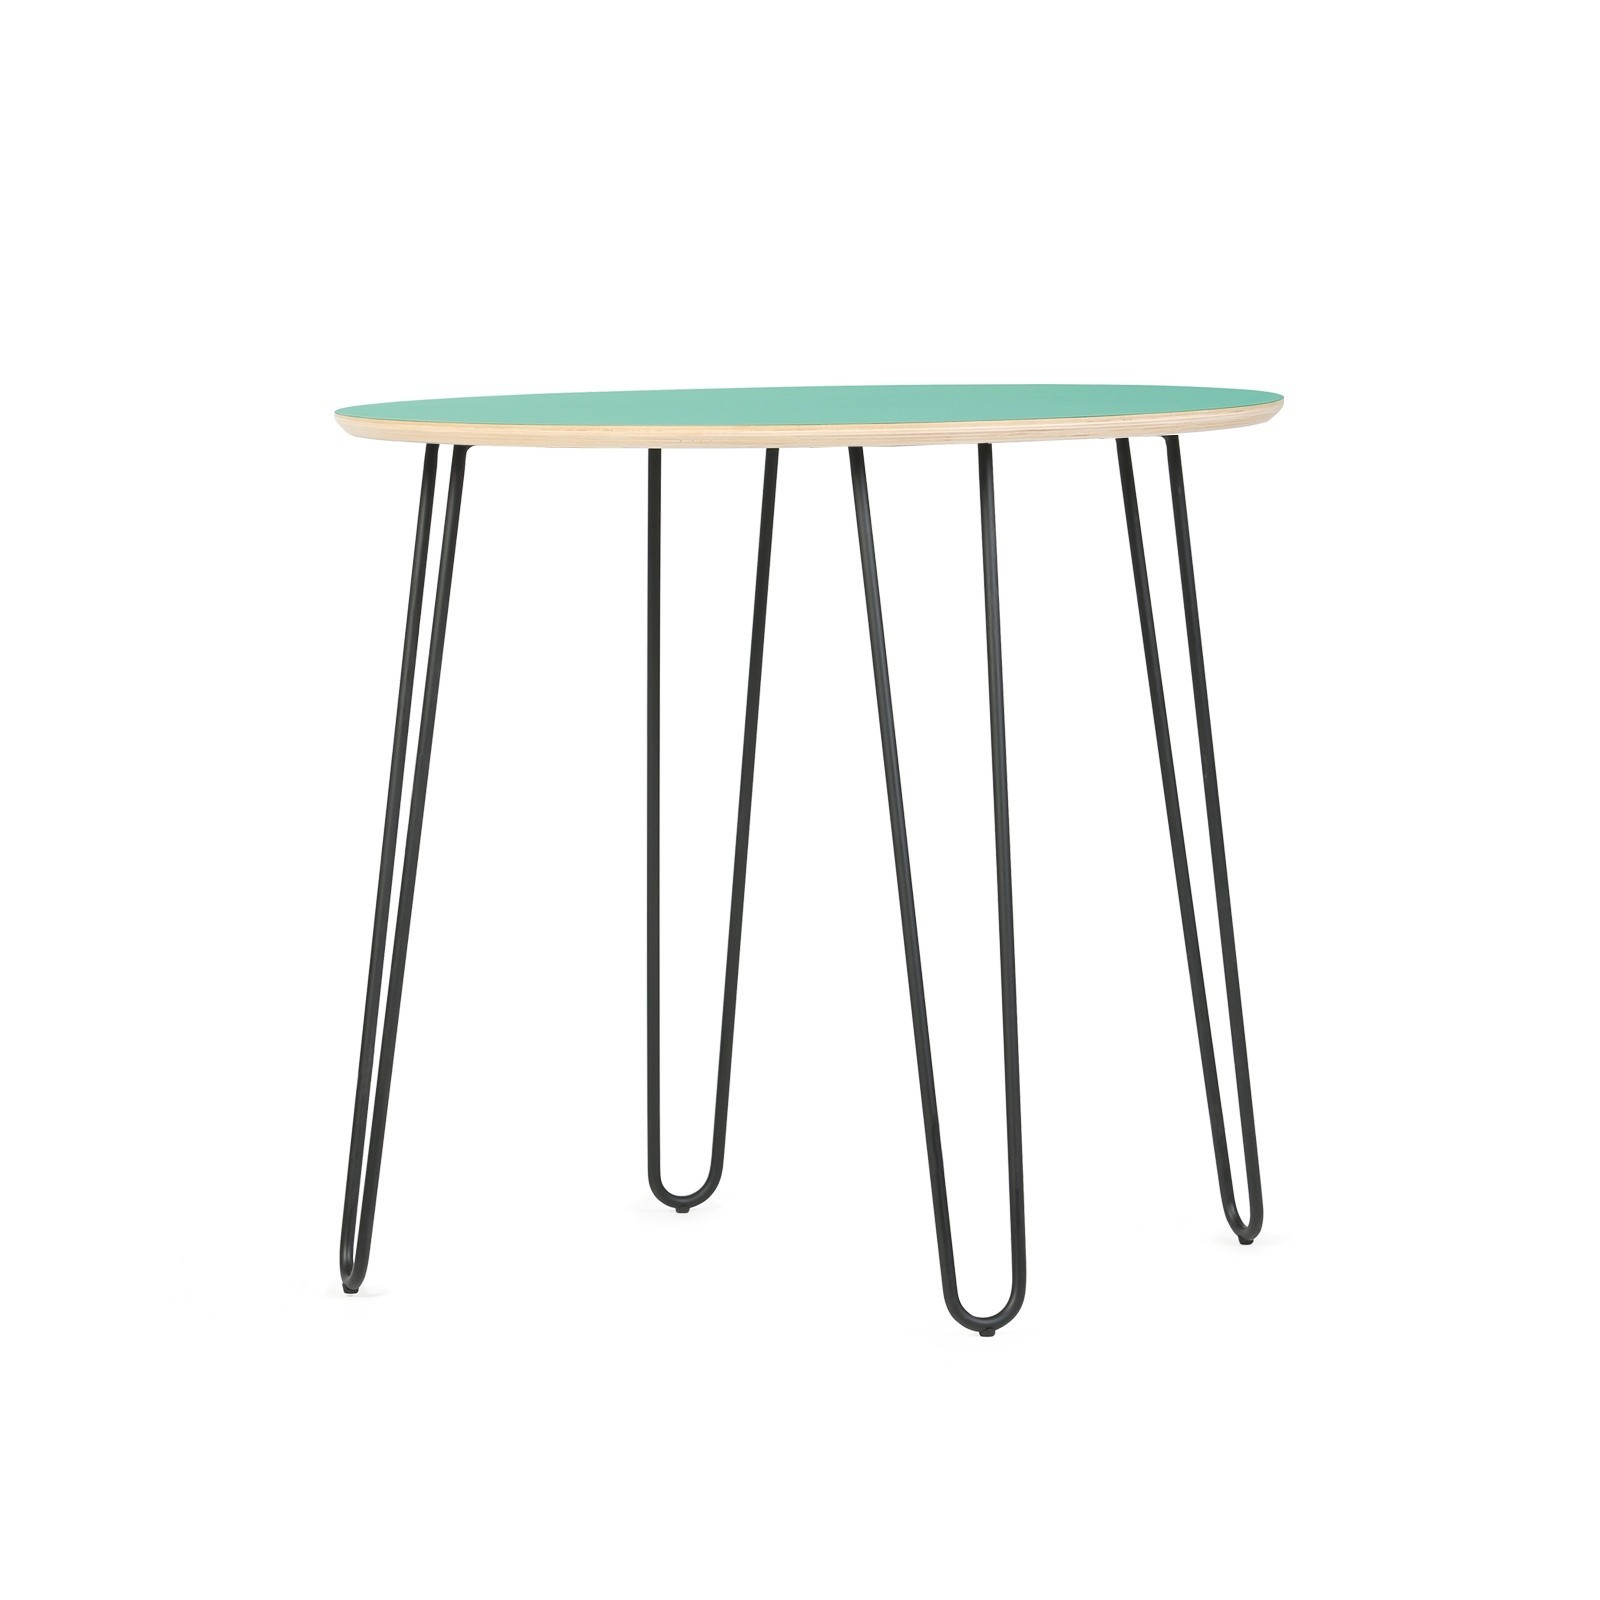 Mannequin table - MO 03 - mint